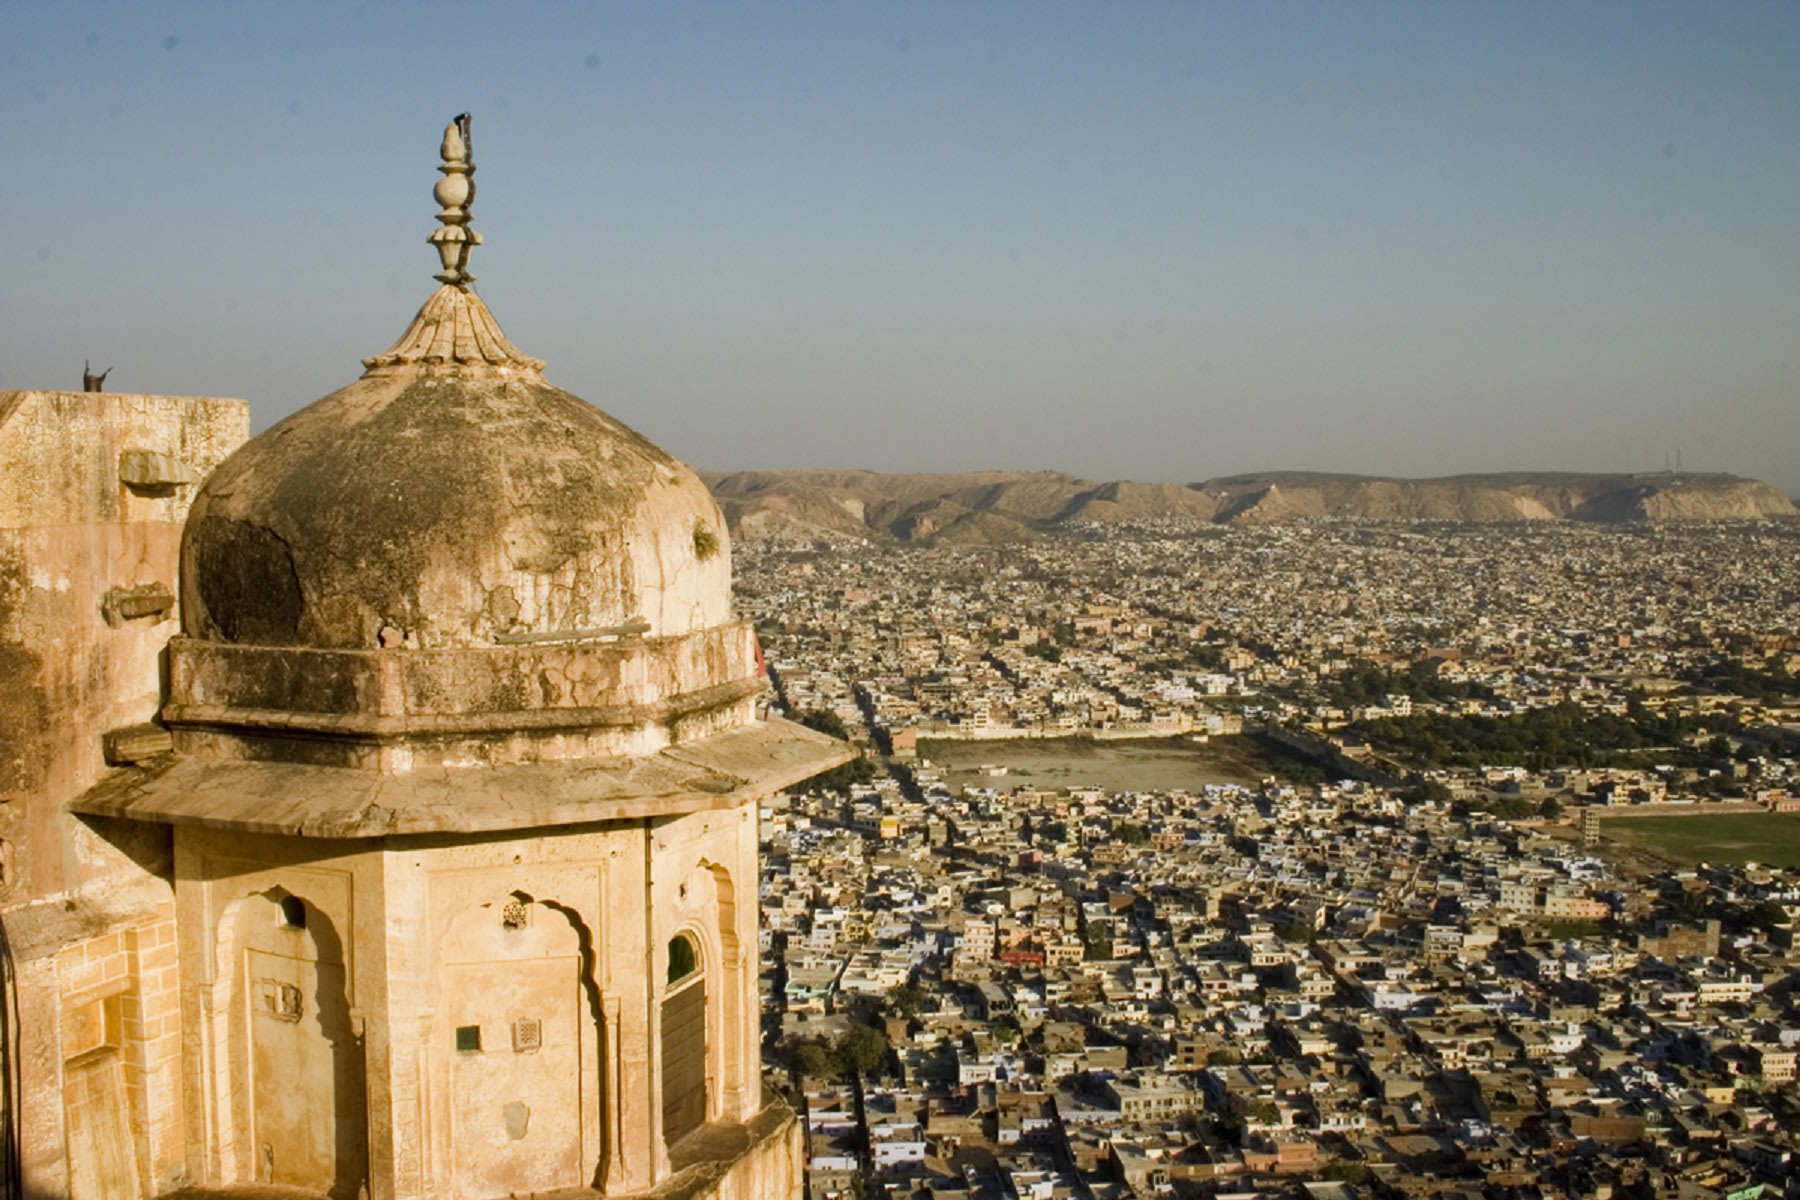 View from Jaipur City from Amer Fort in Jaipur